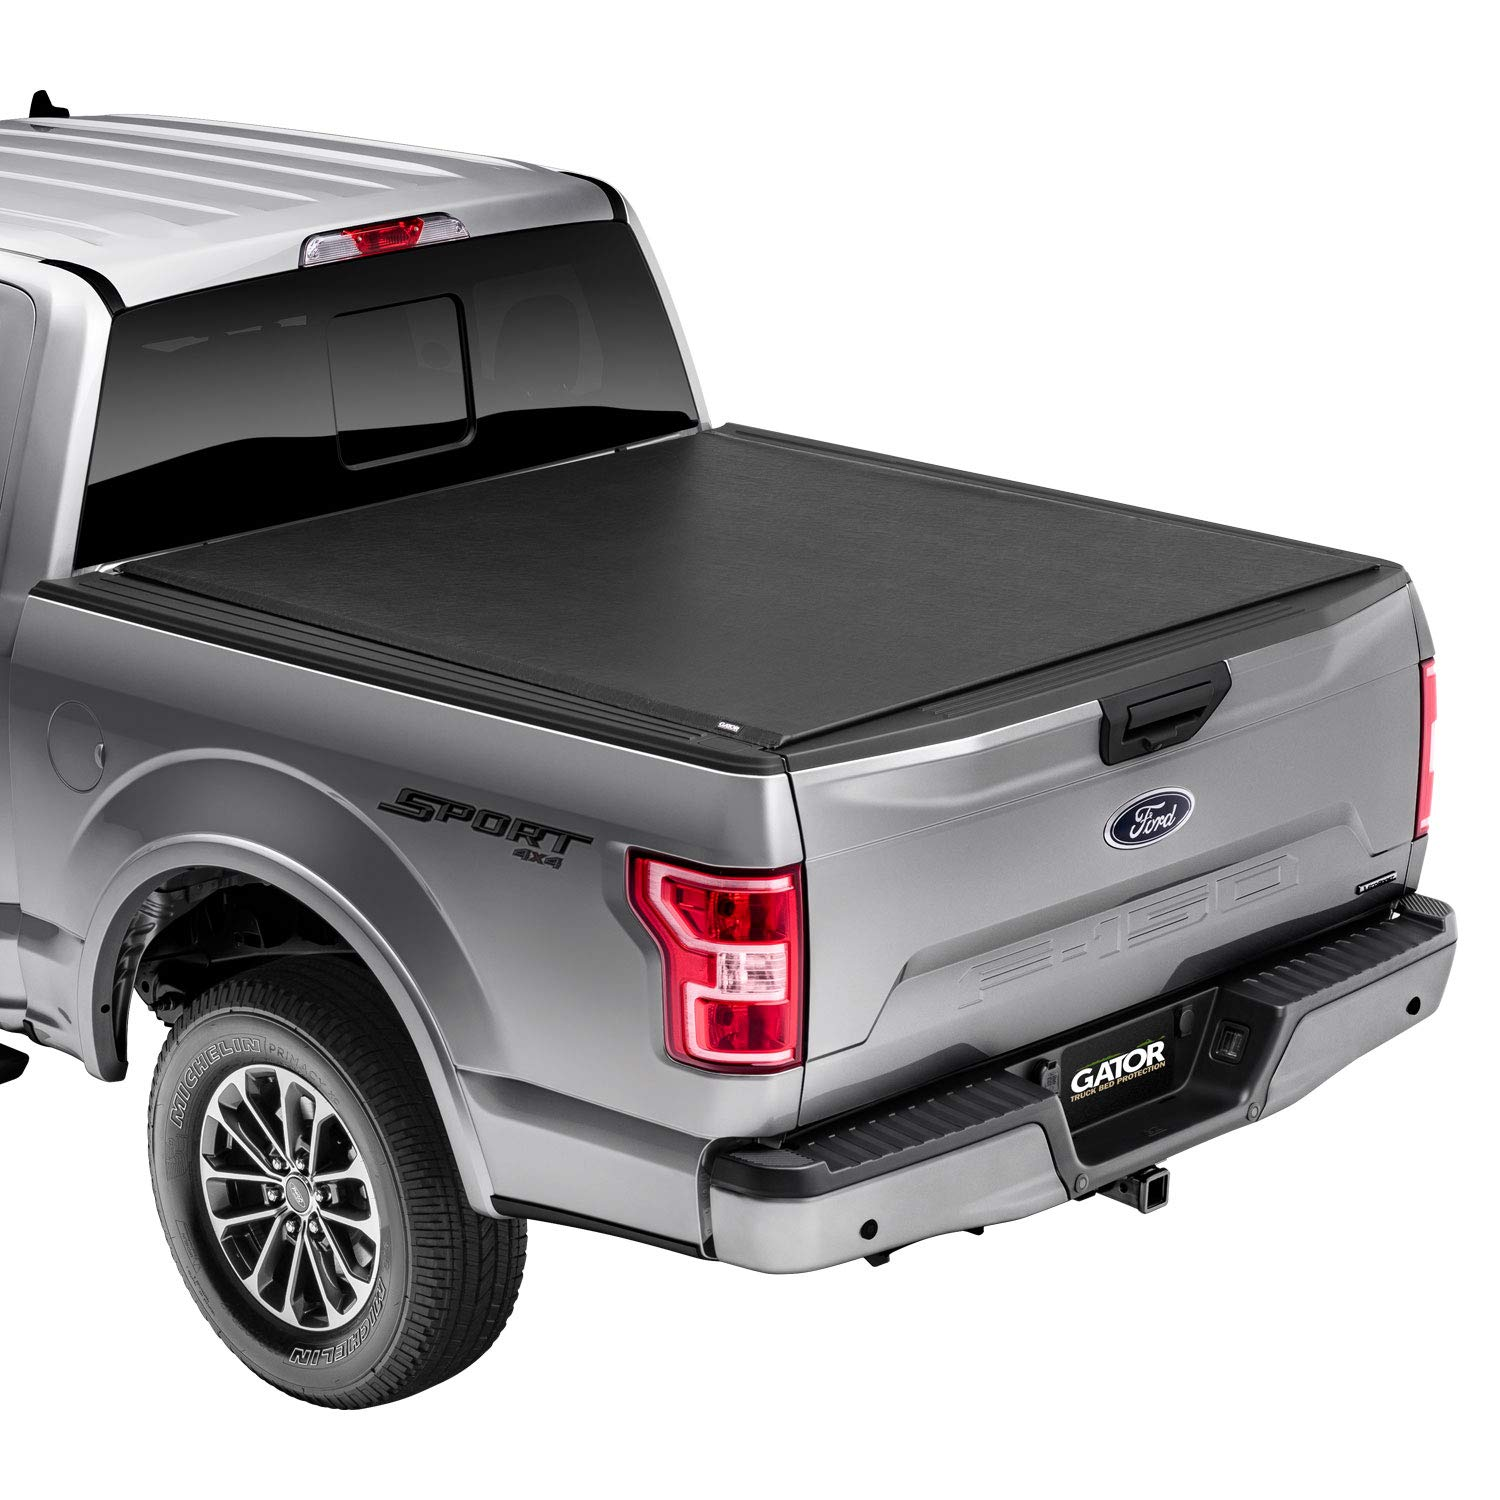 """Gator ETX Soft Roll Up Truck Bed Tonneau Cover   53306   Fits 2004 - 2014 Ford F150 5' 7"""" Bed (67'')"""